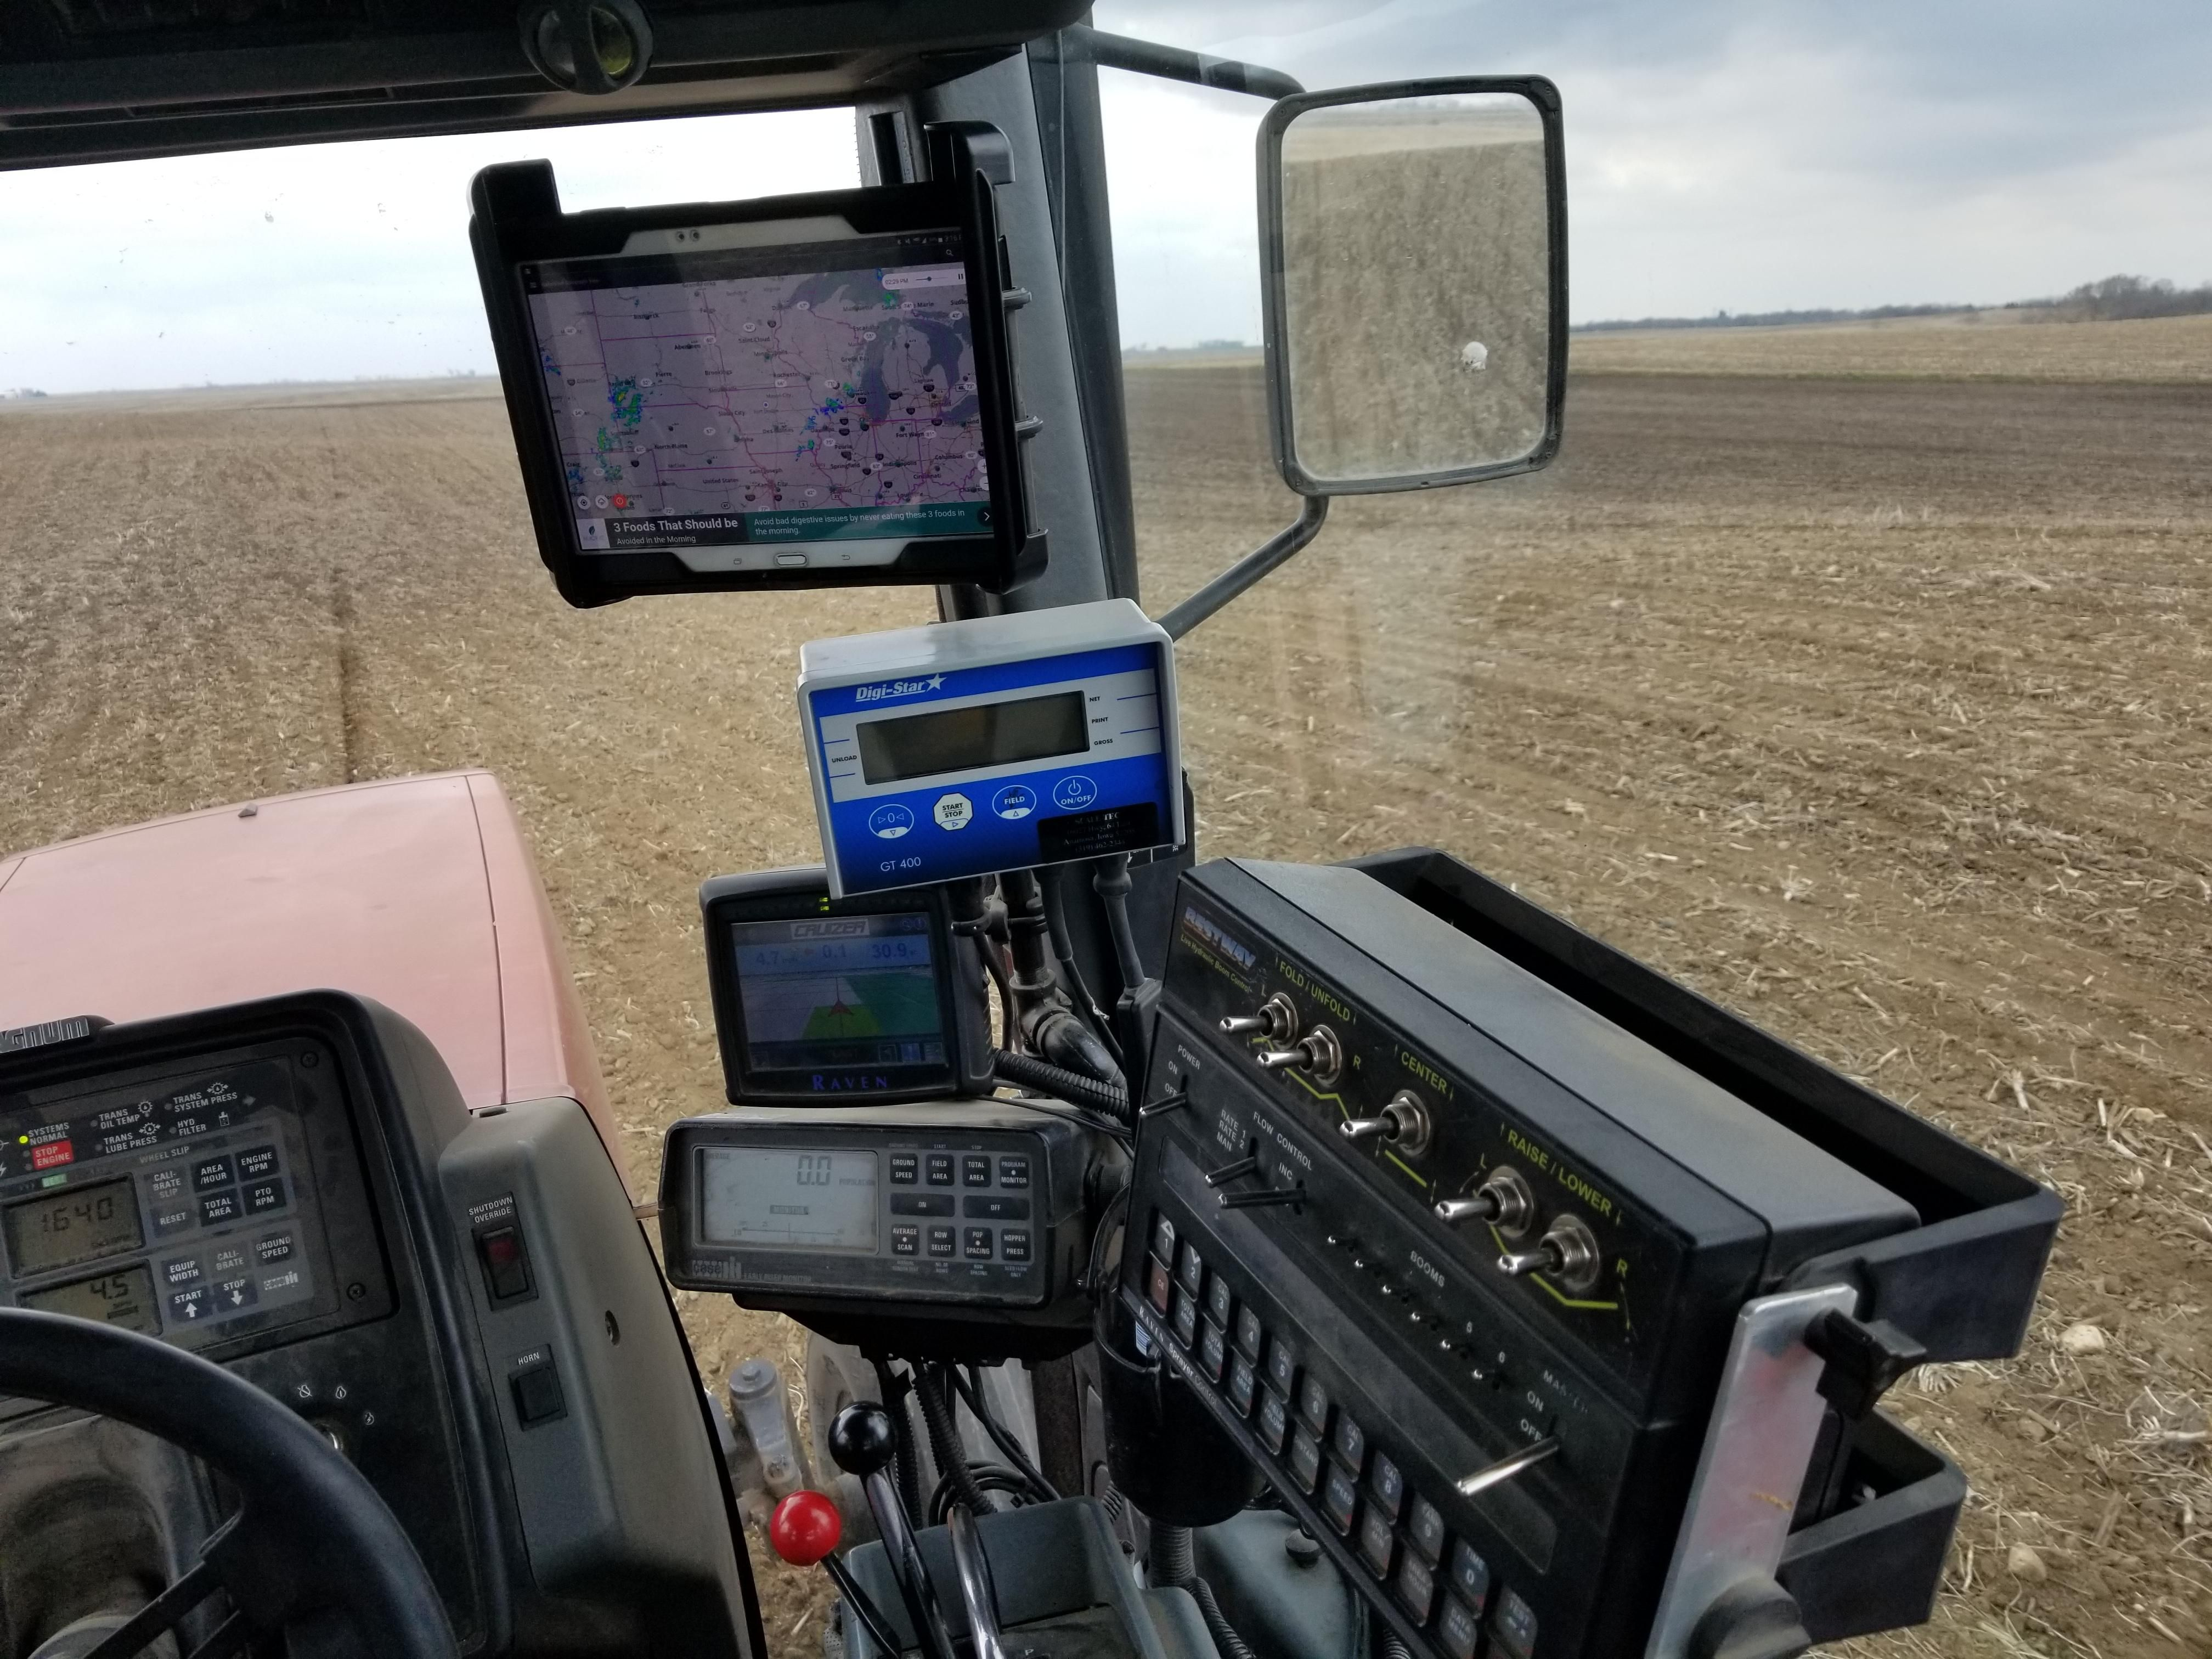 hight resolution of cih 7120 planting corn with classic early riser monitor raven cruiser gps digi star scale